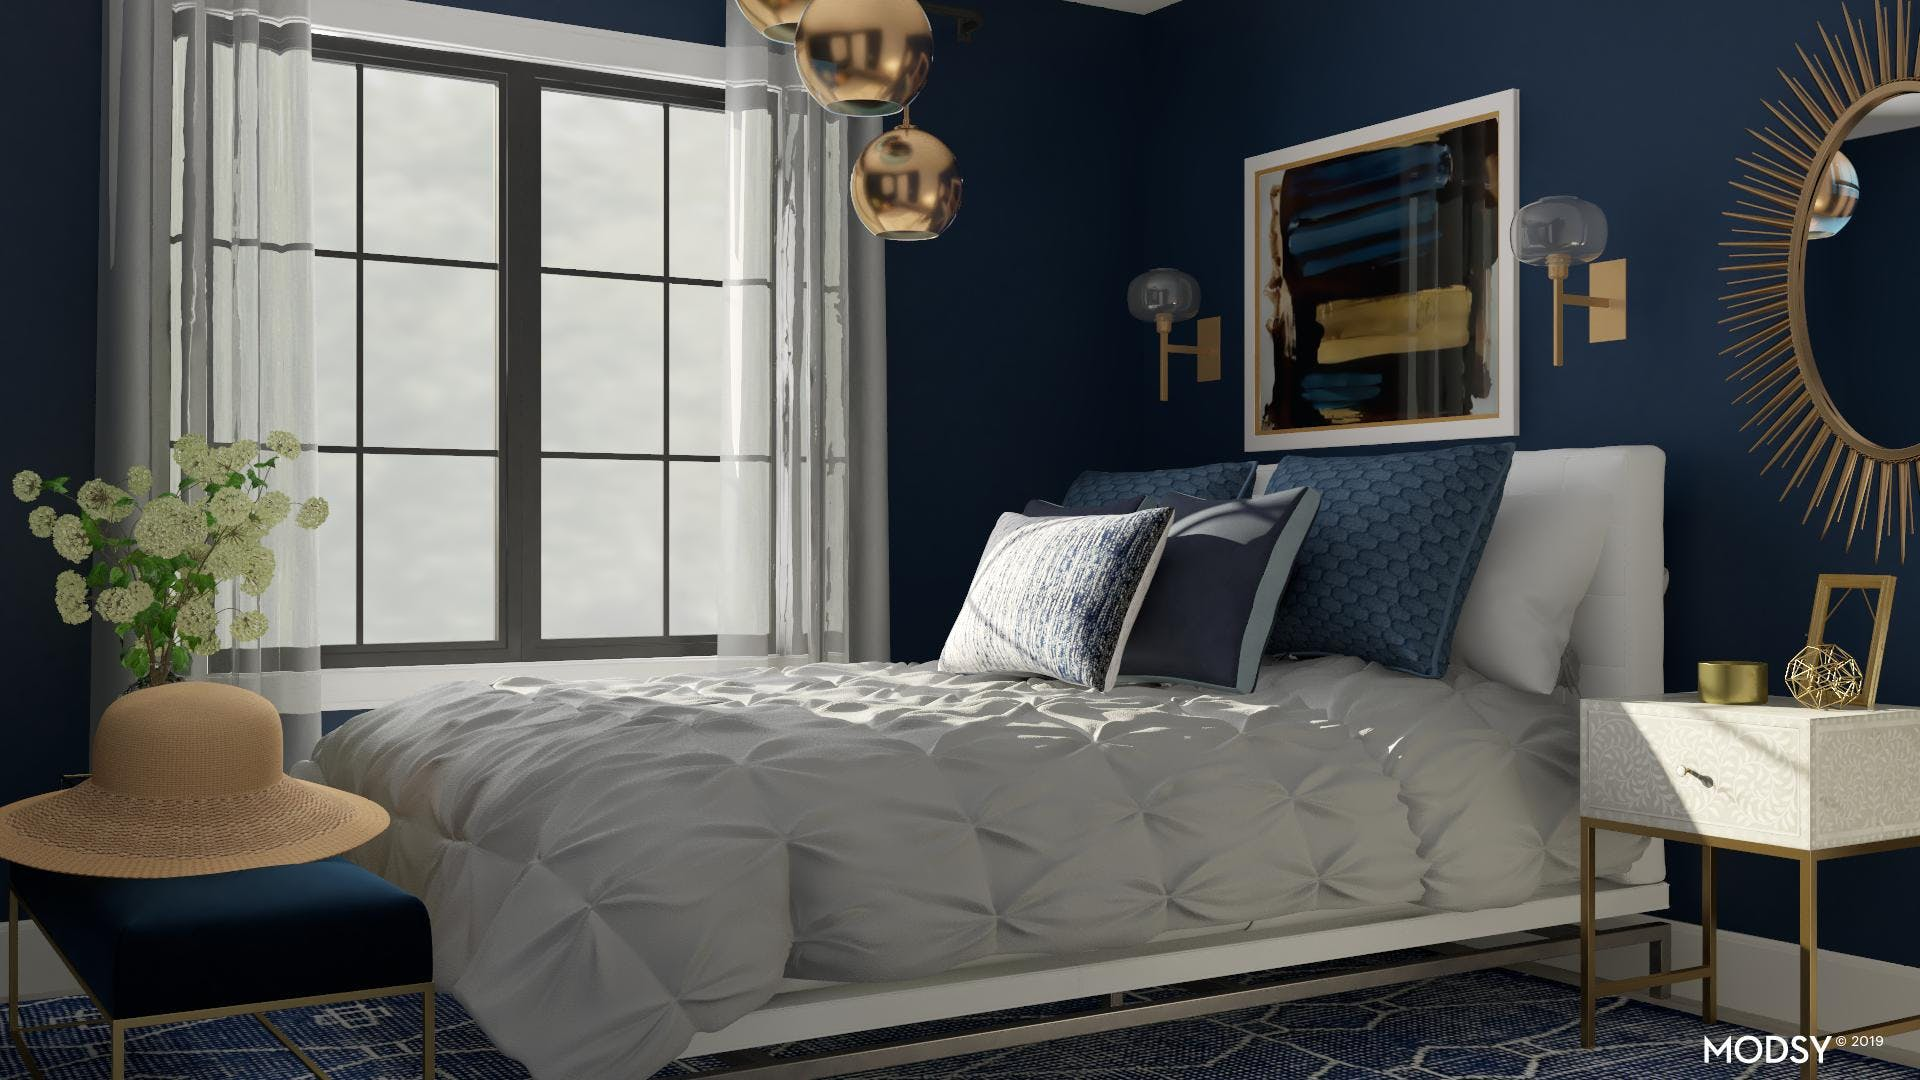 Glam and Moody Bedroom Design